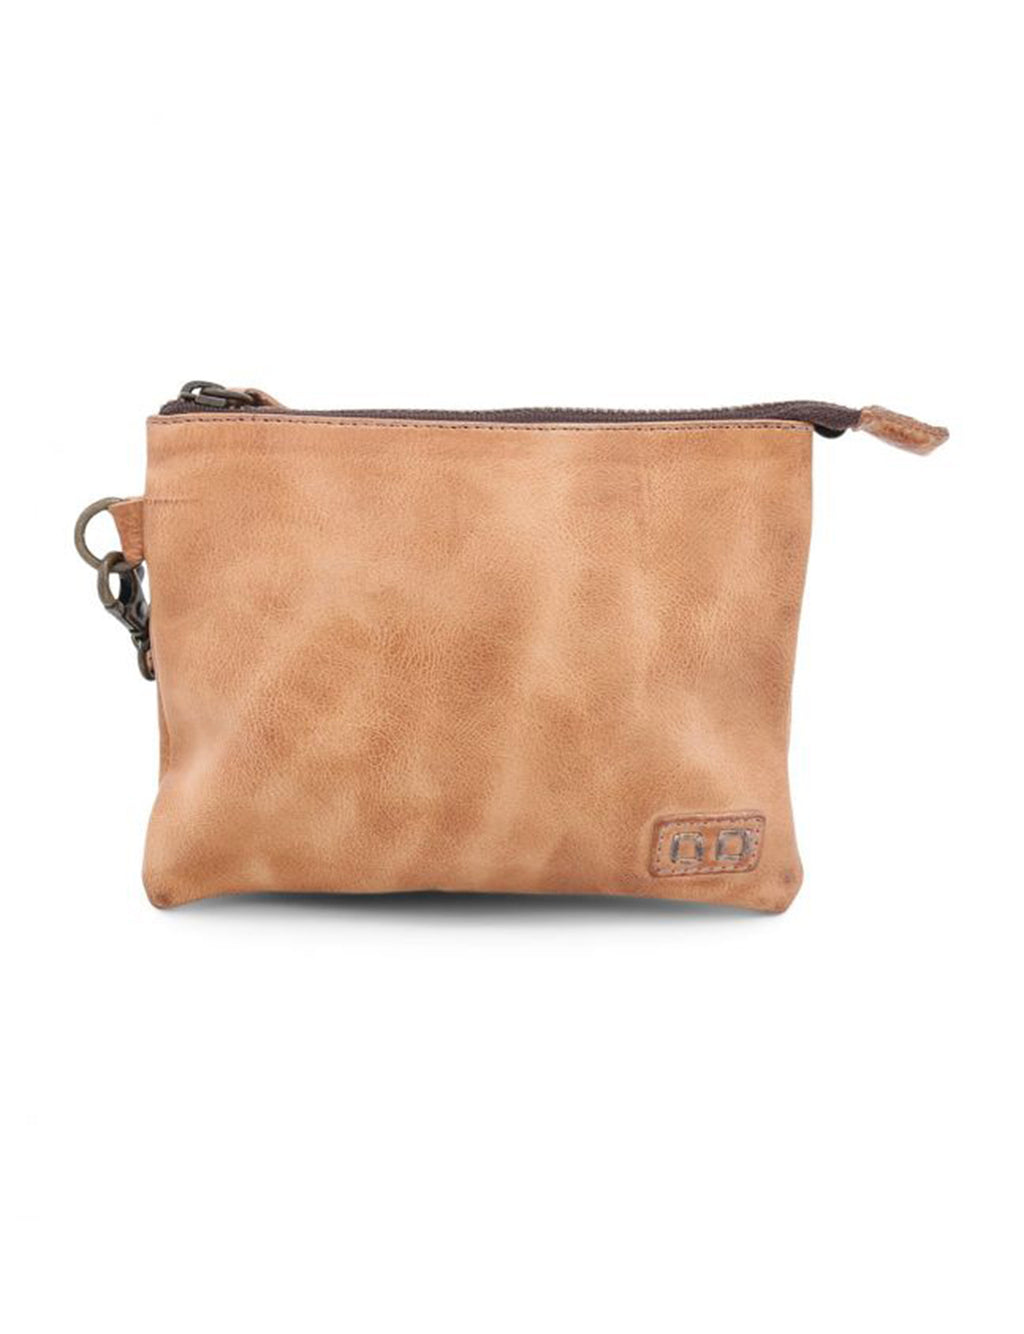 Stadium Crossbody in Tan Rustic